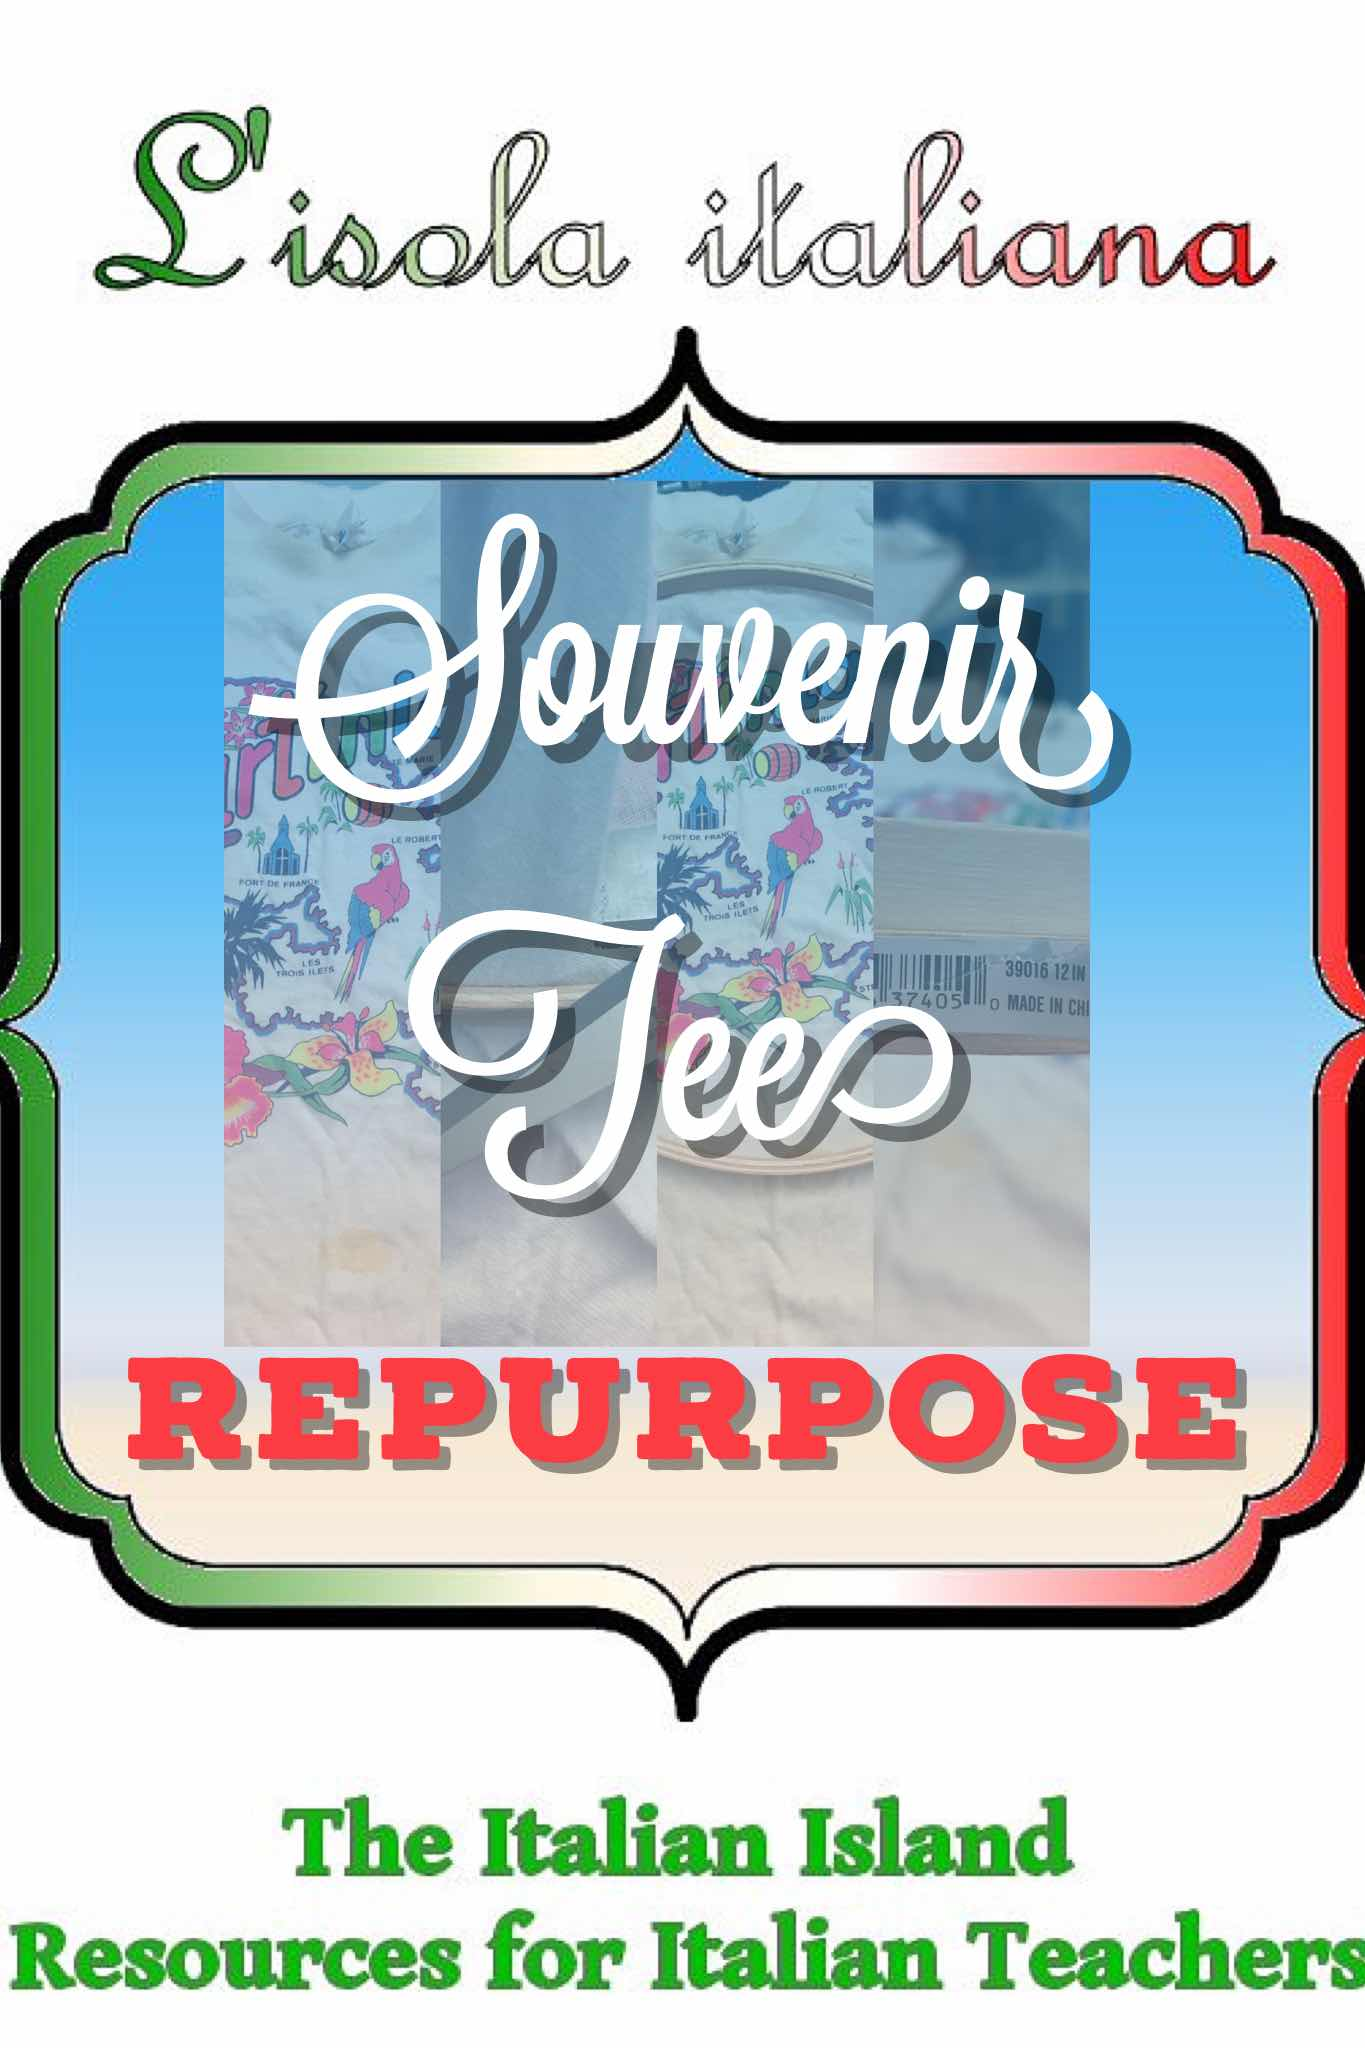 https://italianisland.blogspot.com/2019/01/souvenir-tee-repurpose.html